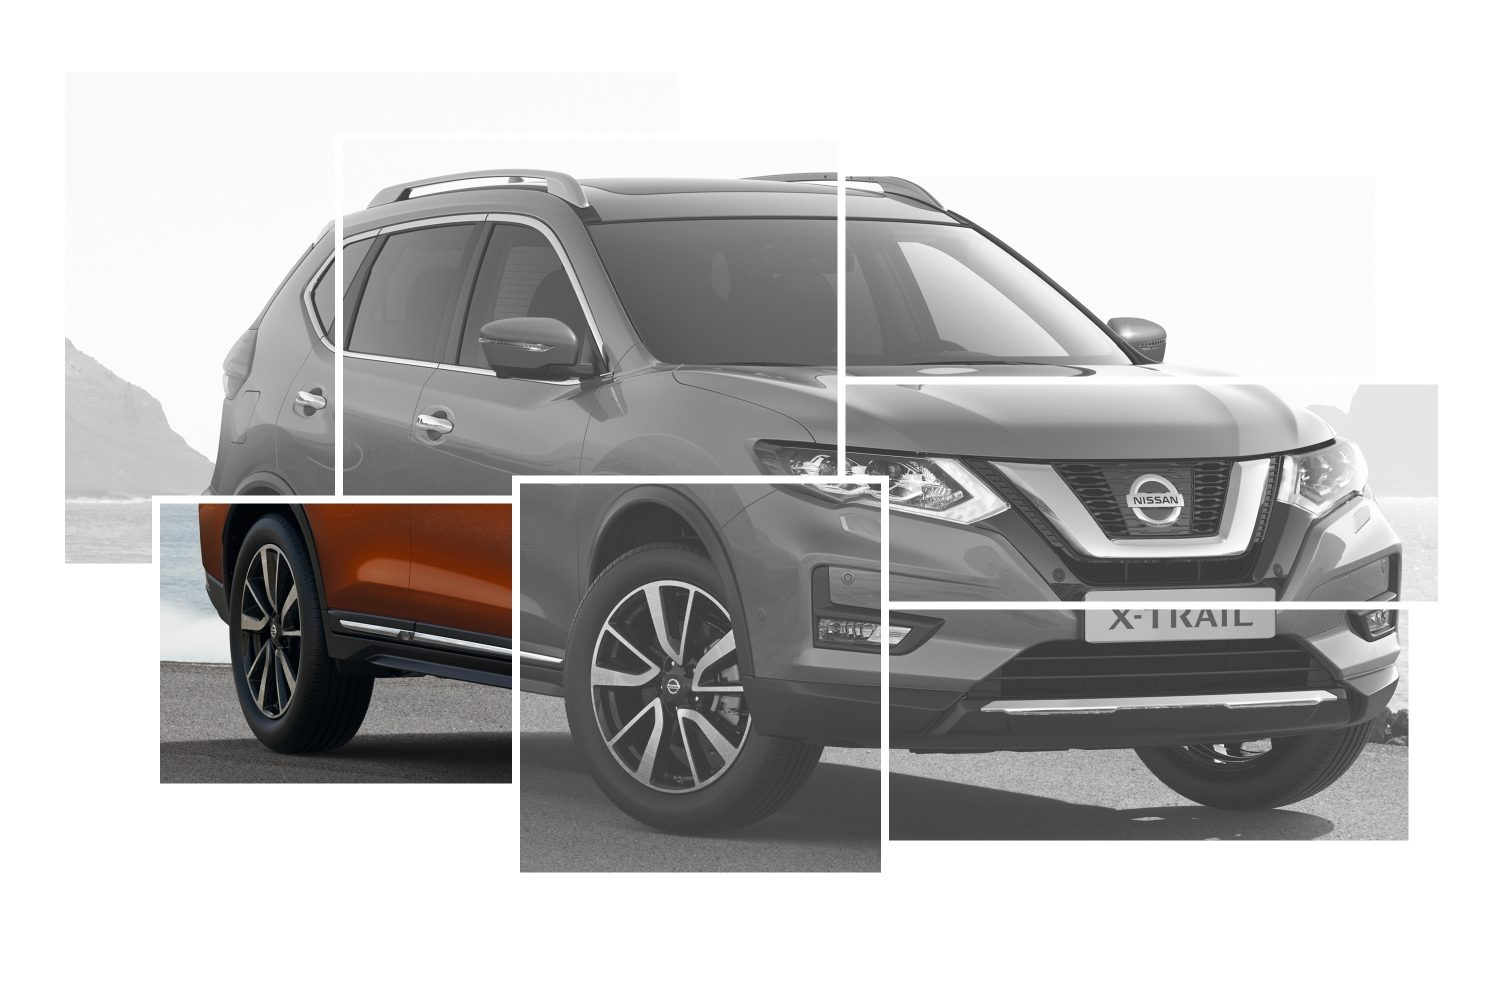 X-Trail Exterior Design collage focus on chrome side door sills